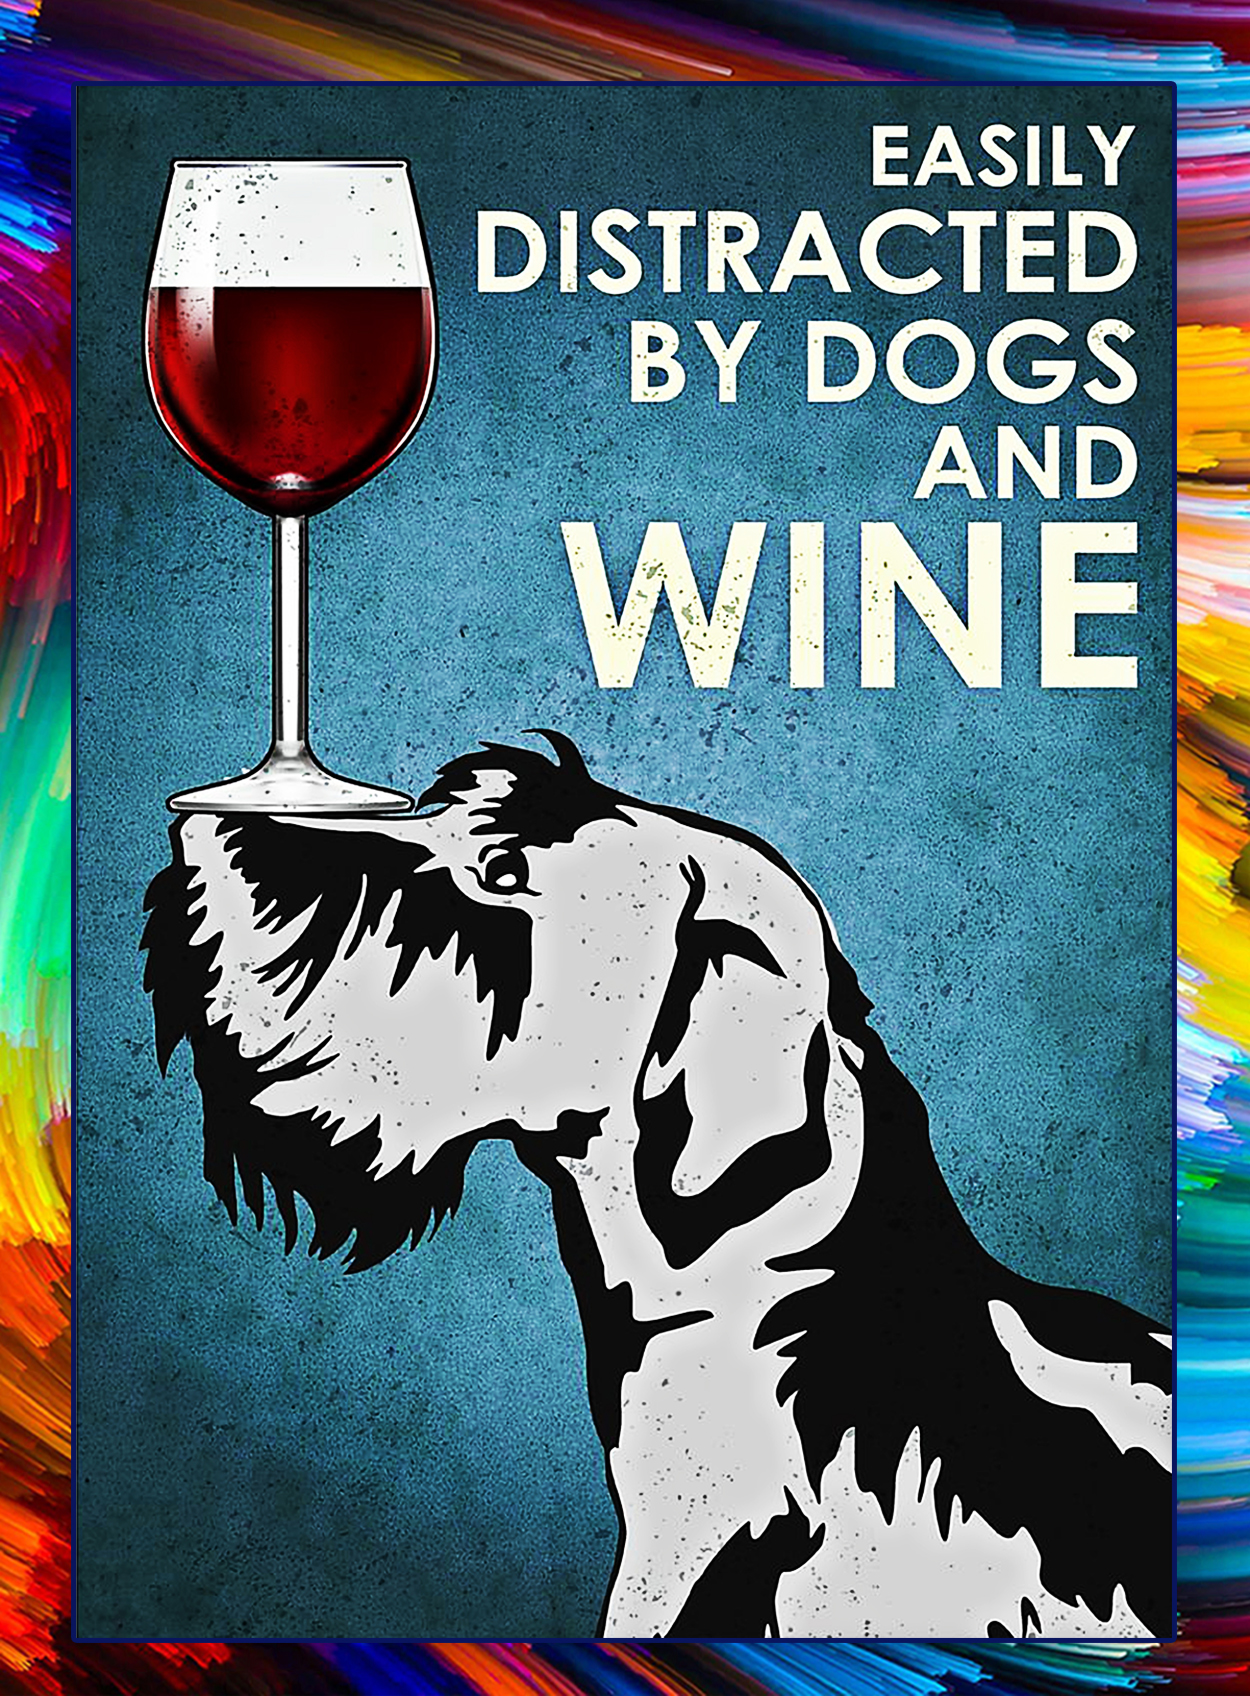 Miniature schnauzer Easily distracted by dogs and wine poster - A3